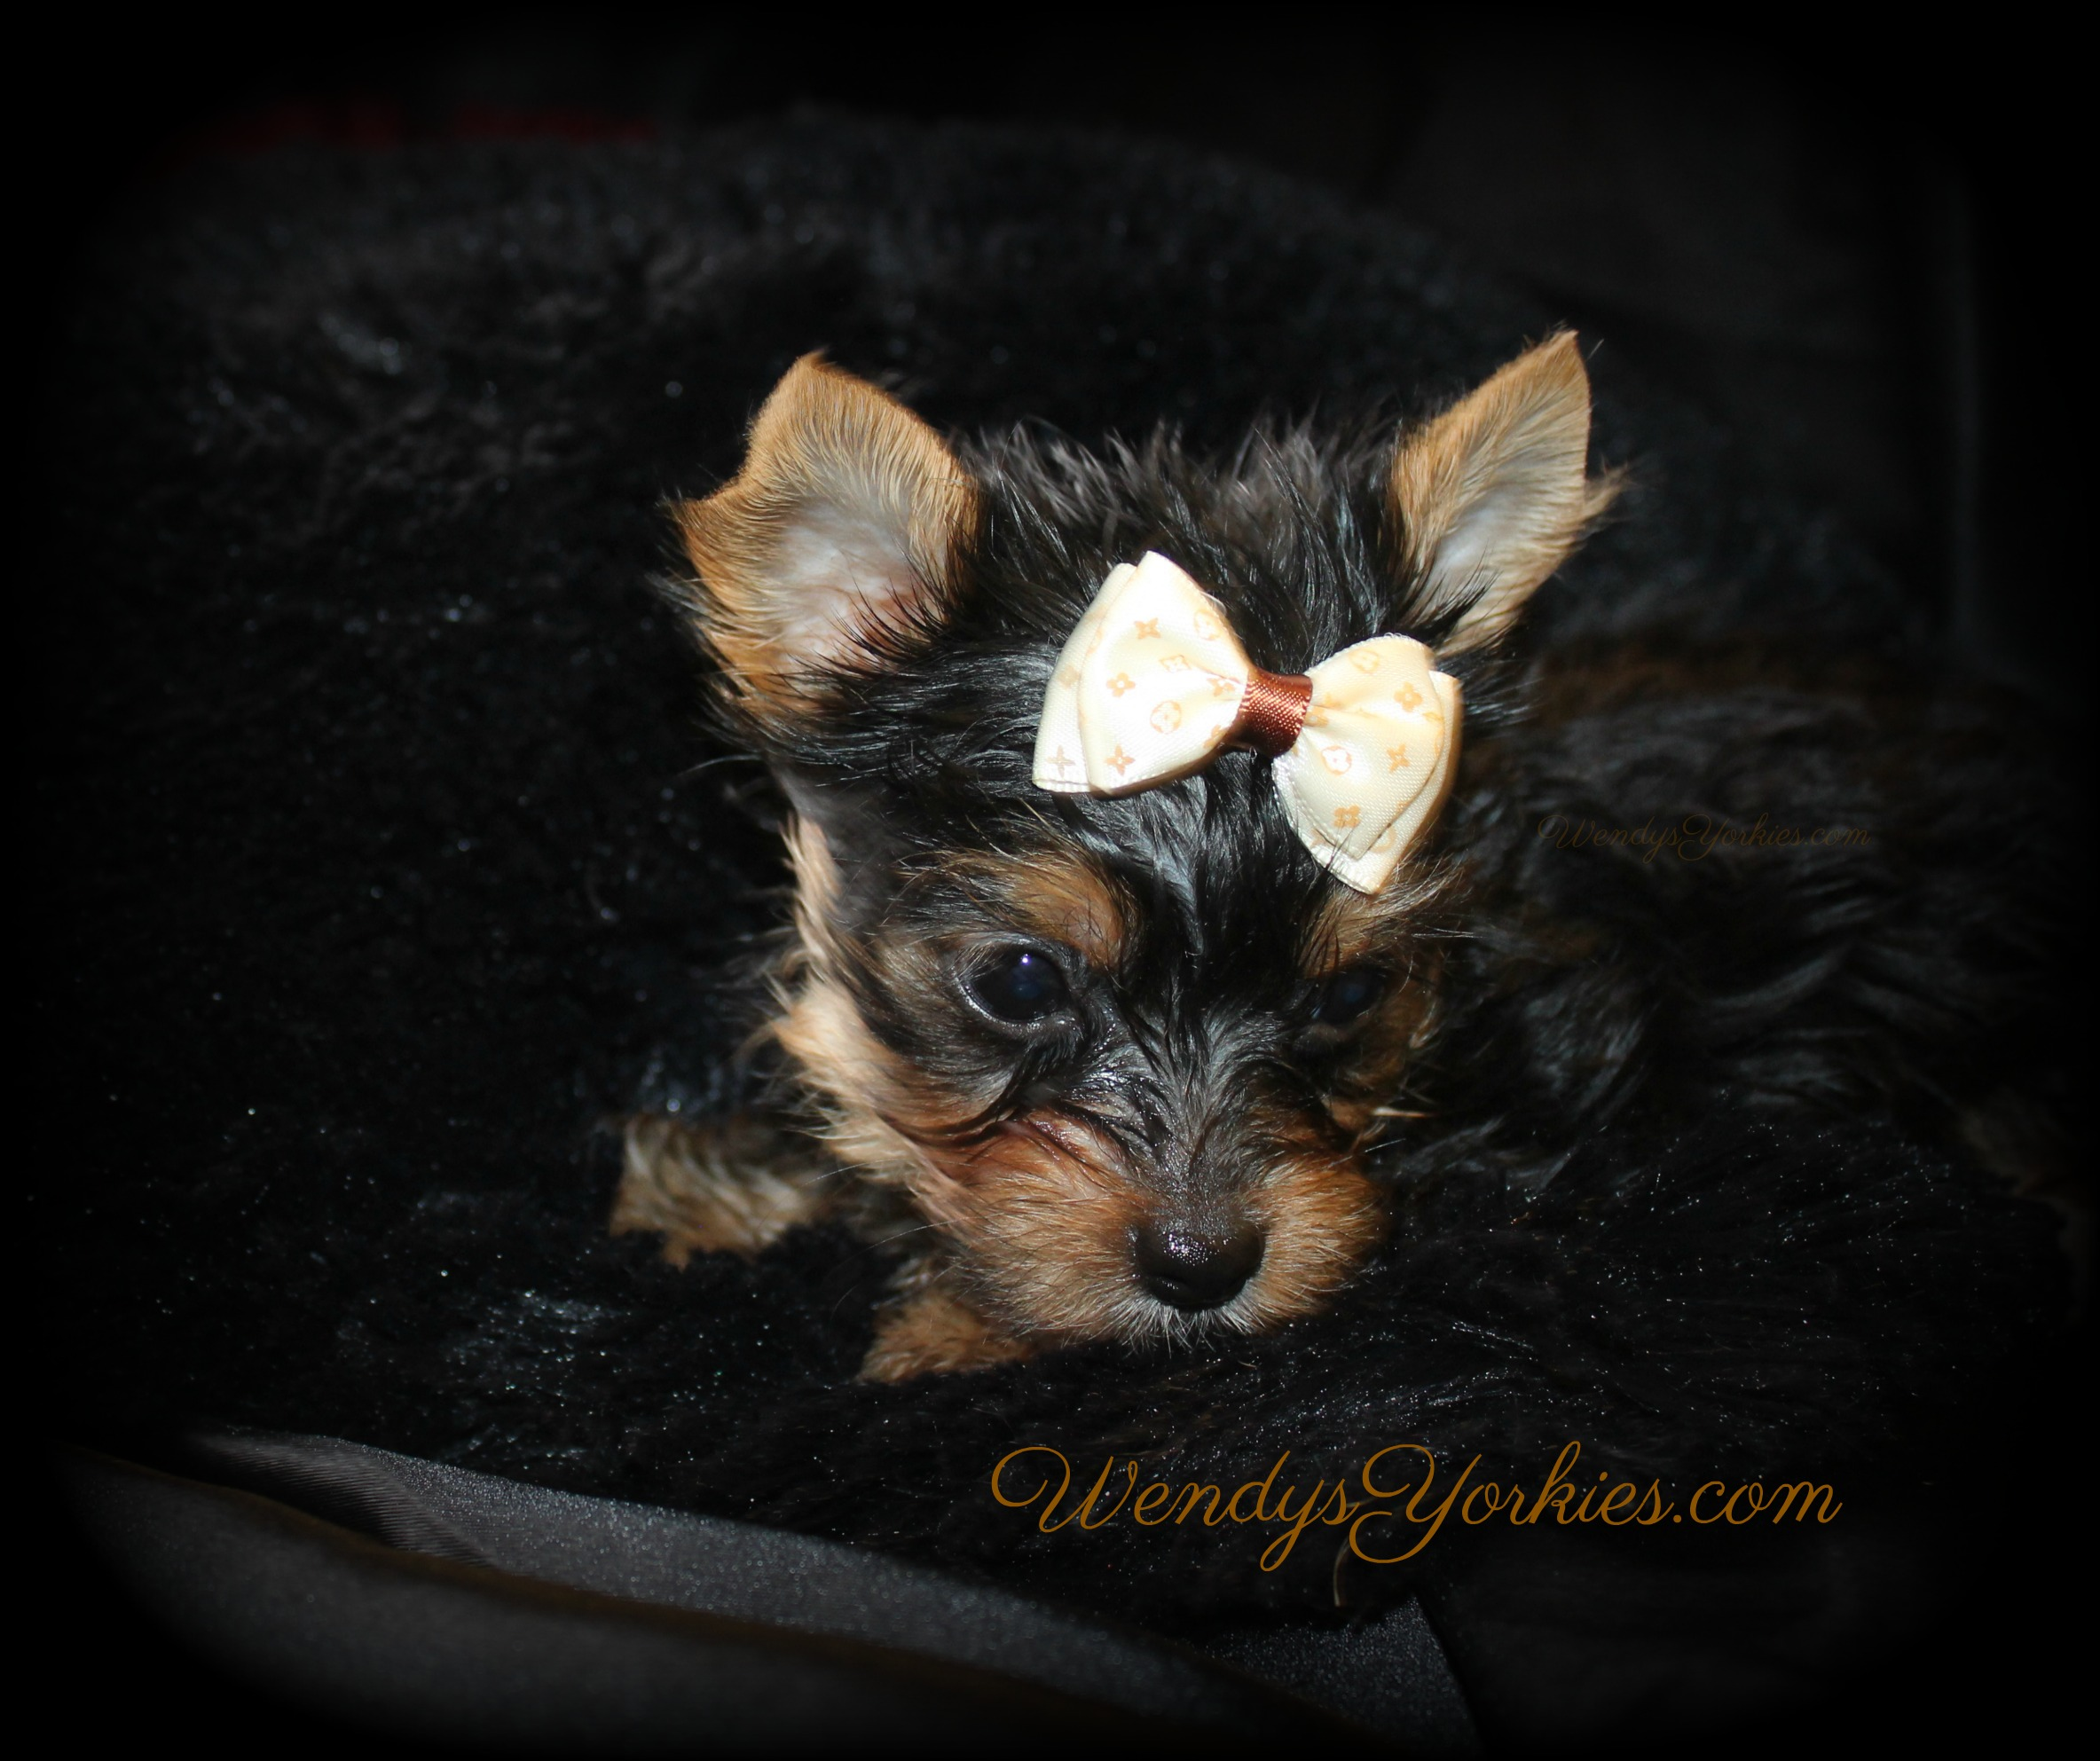 Yorkie puppies for sale in Texas, Anna m2, WendysYorkies.com